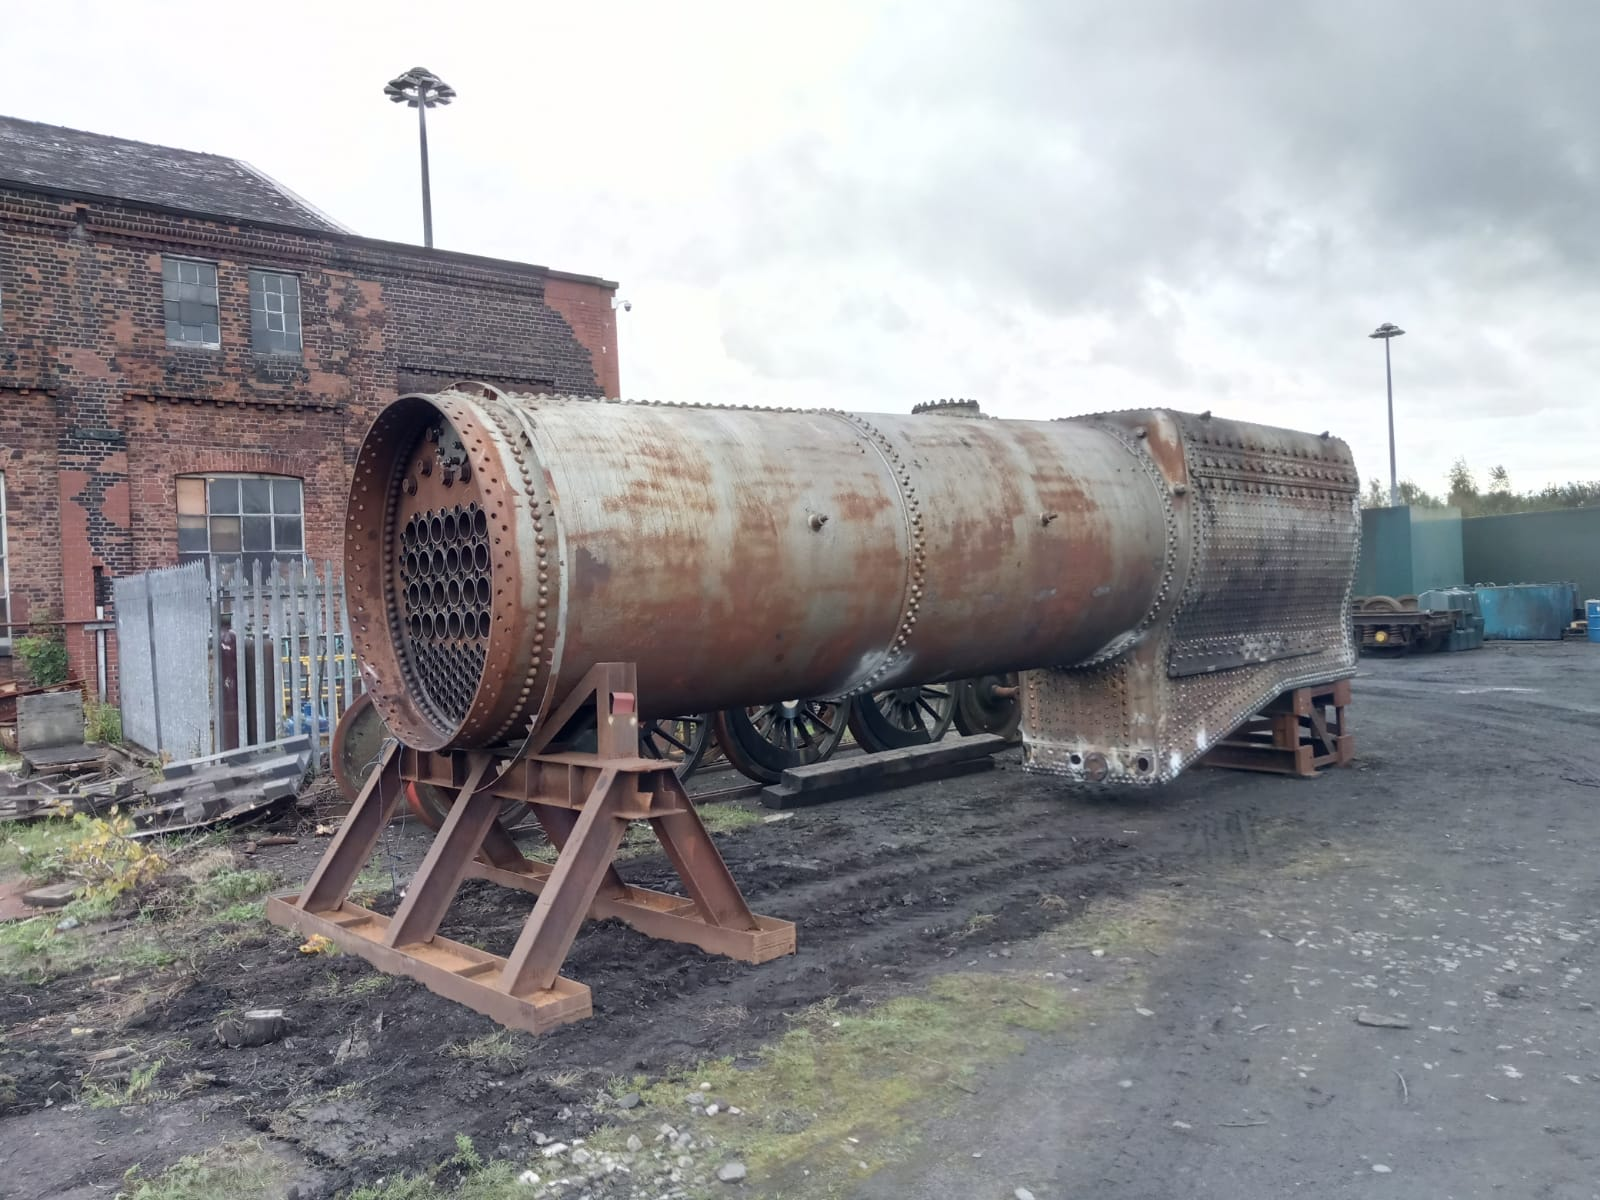 The boiler outside again in readiness for its hydraulic test. © Chris Bodell